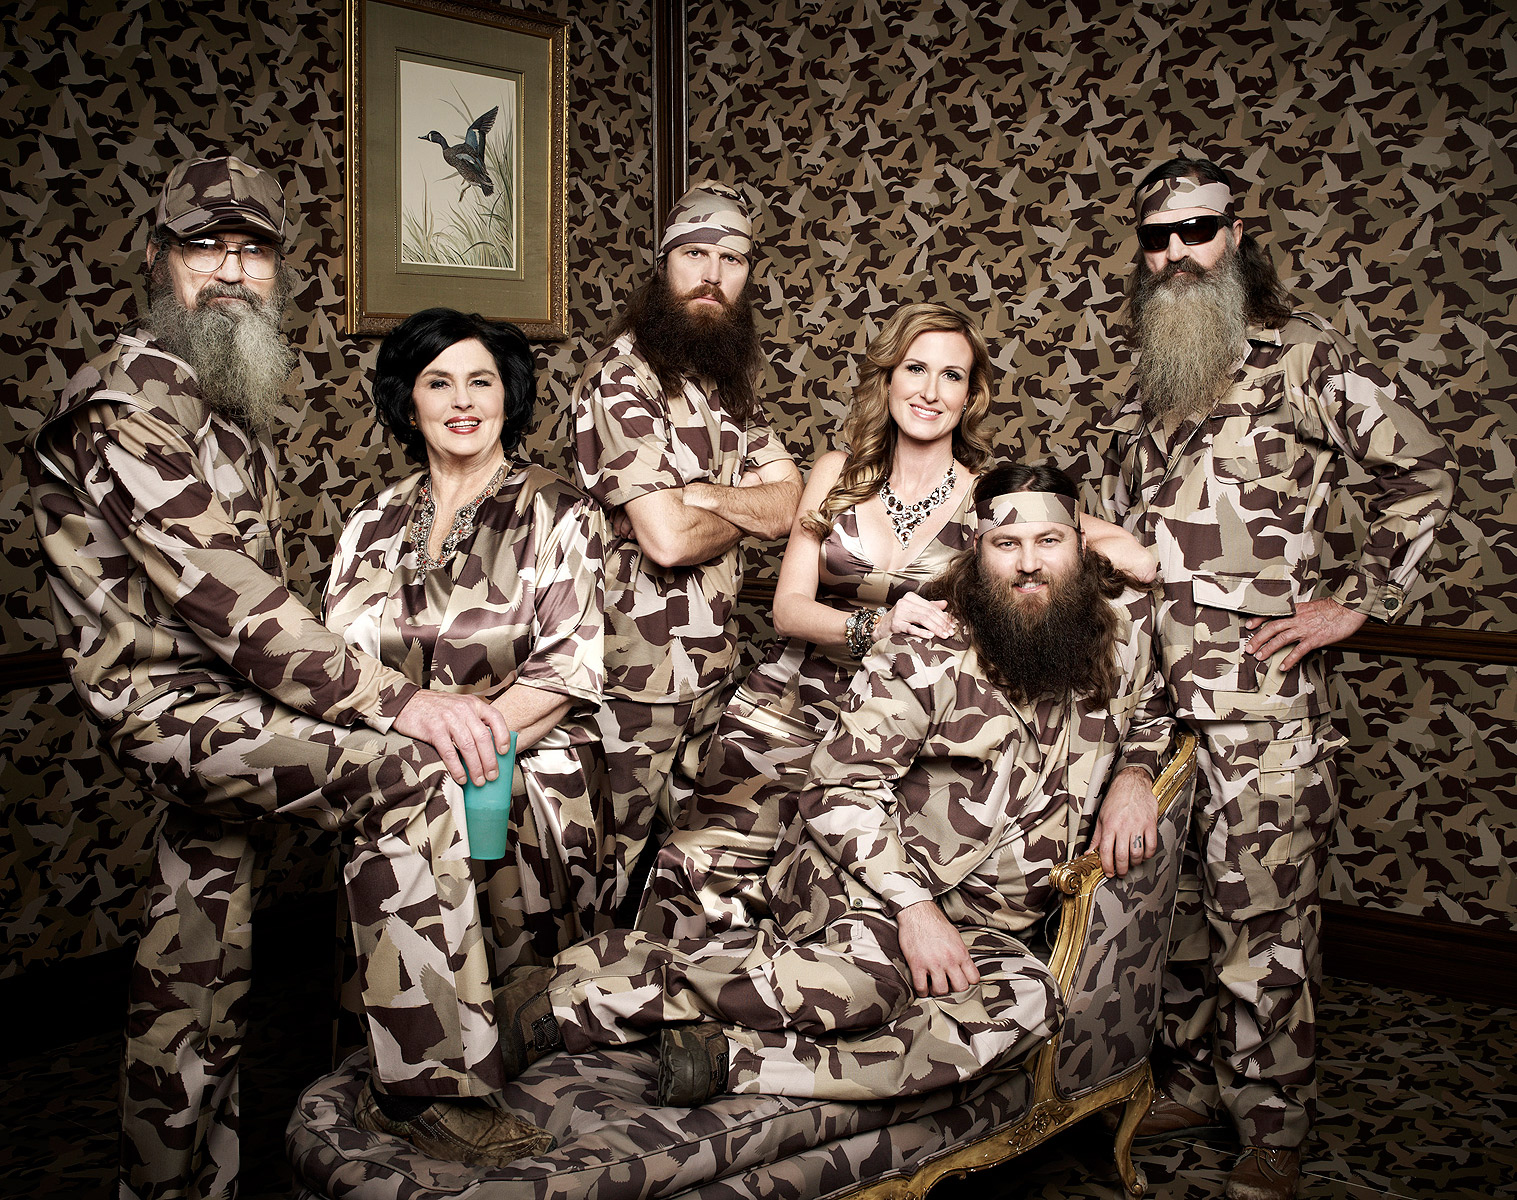 Duck Dynasty' Cast: Where Are They Now?